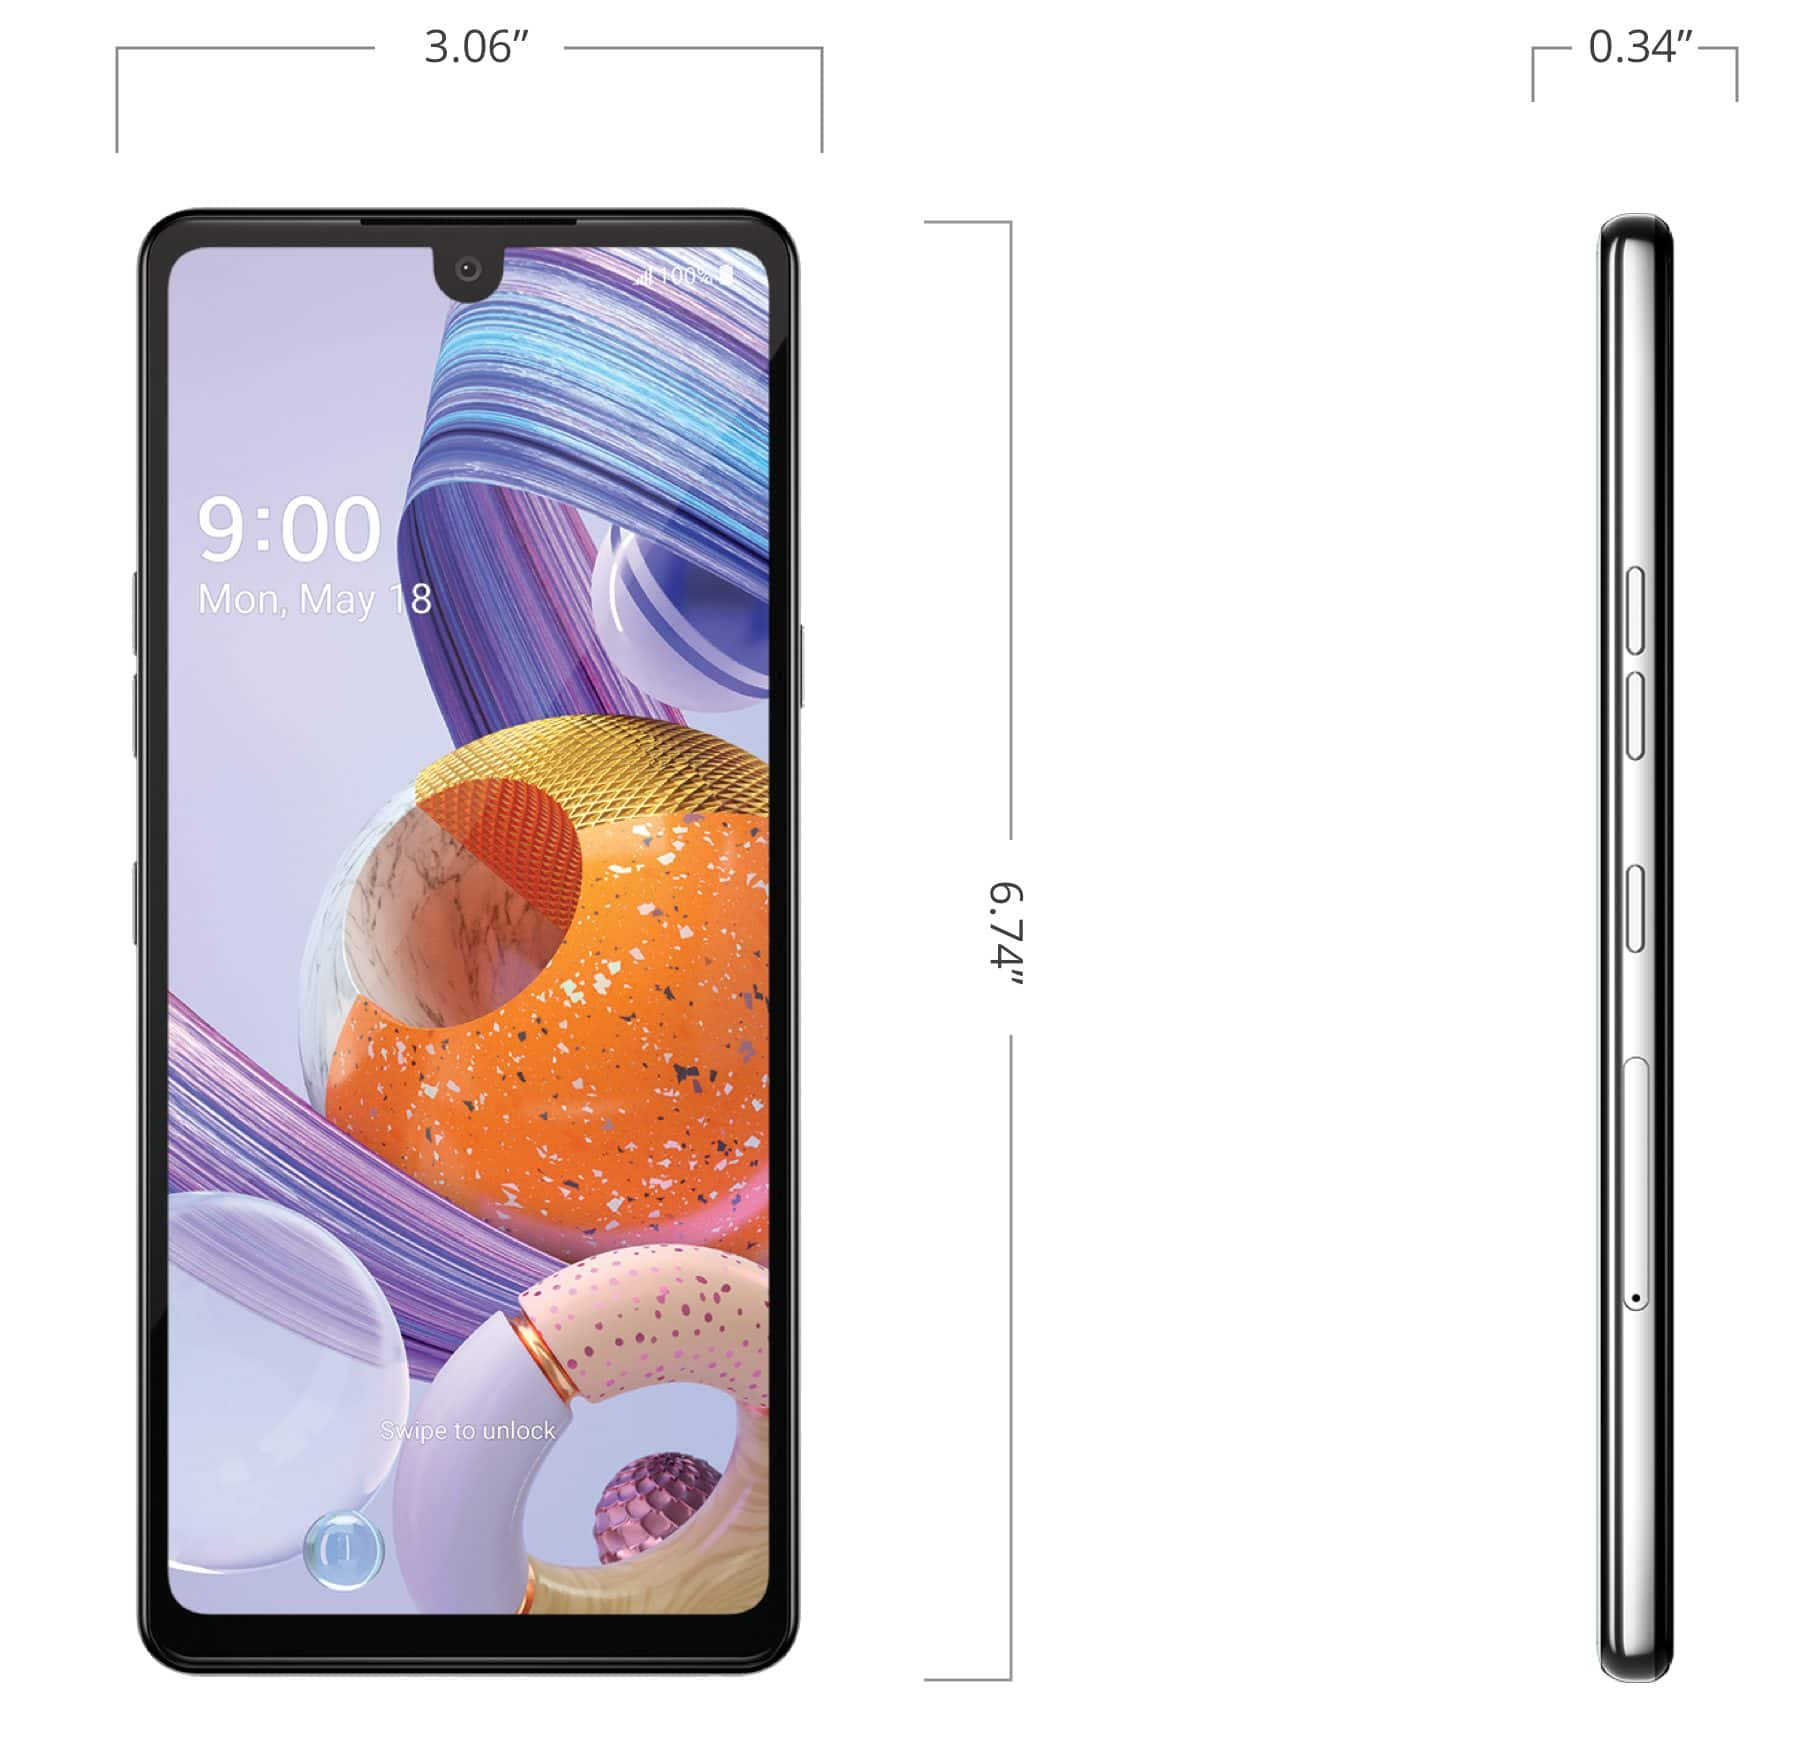 """BOOST  new code 20 per cent off Android phones LG Stylo 6 64GB Storage 3GB RAM 6.8"""" screen Android 10 Stylus Pen Boost Mobile $143.99 AFTER coupon Free Ship"""